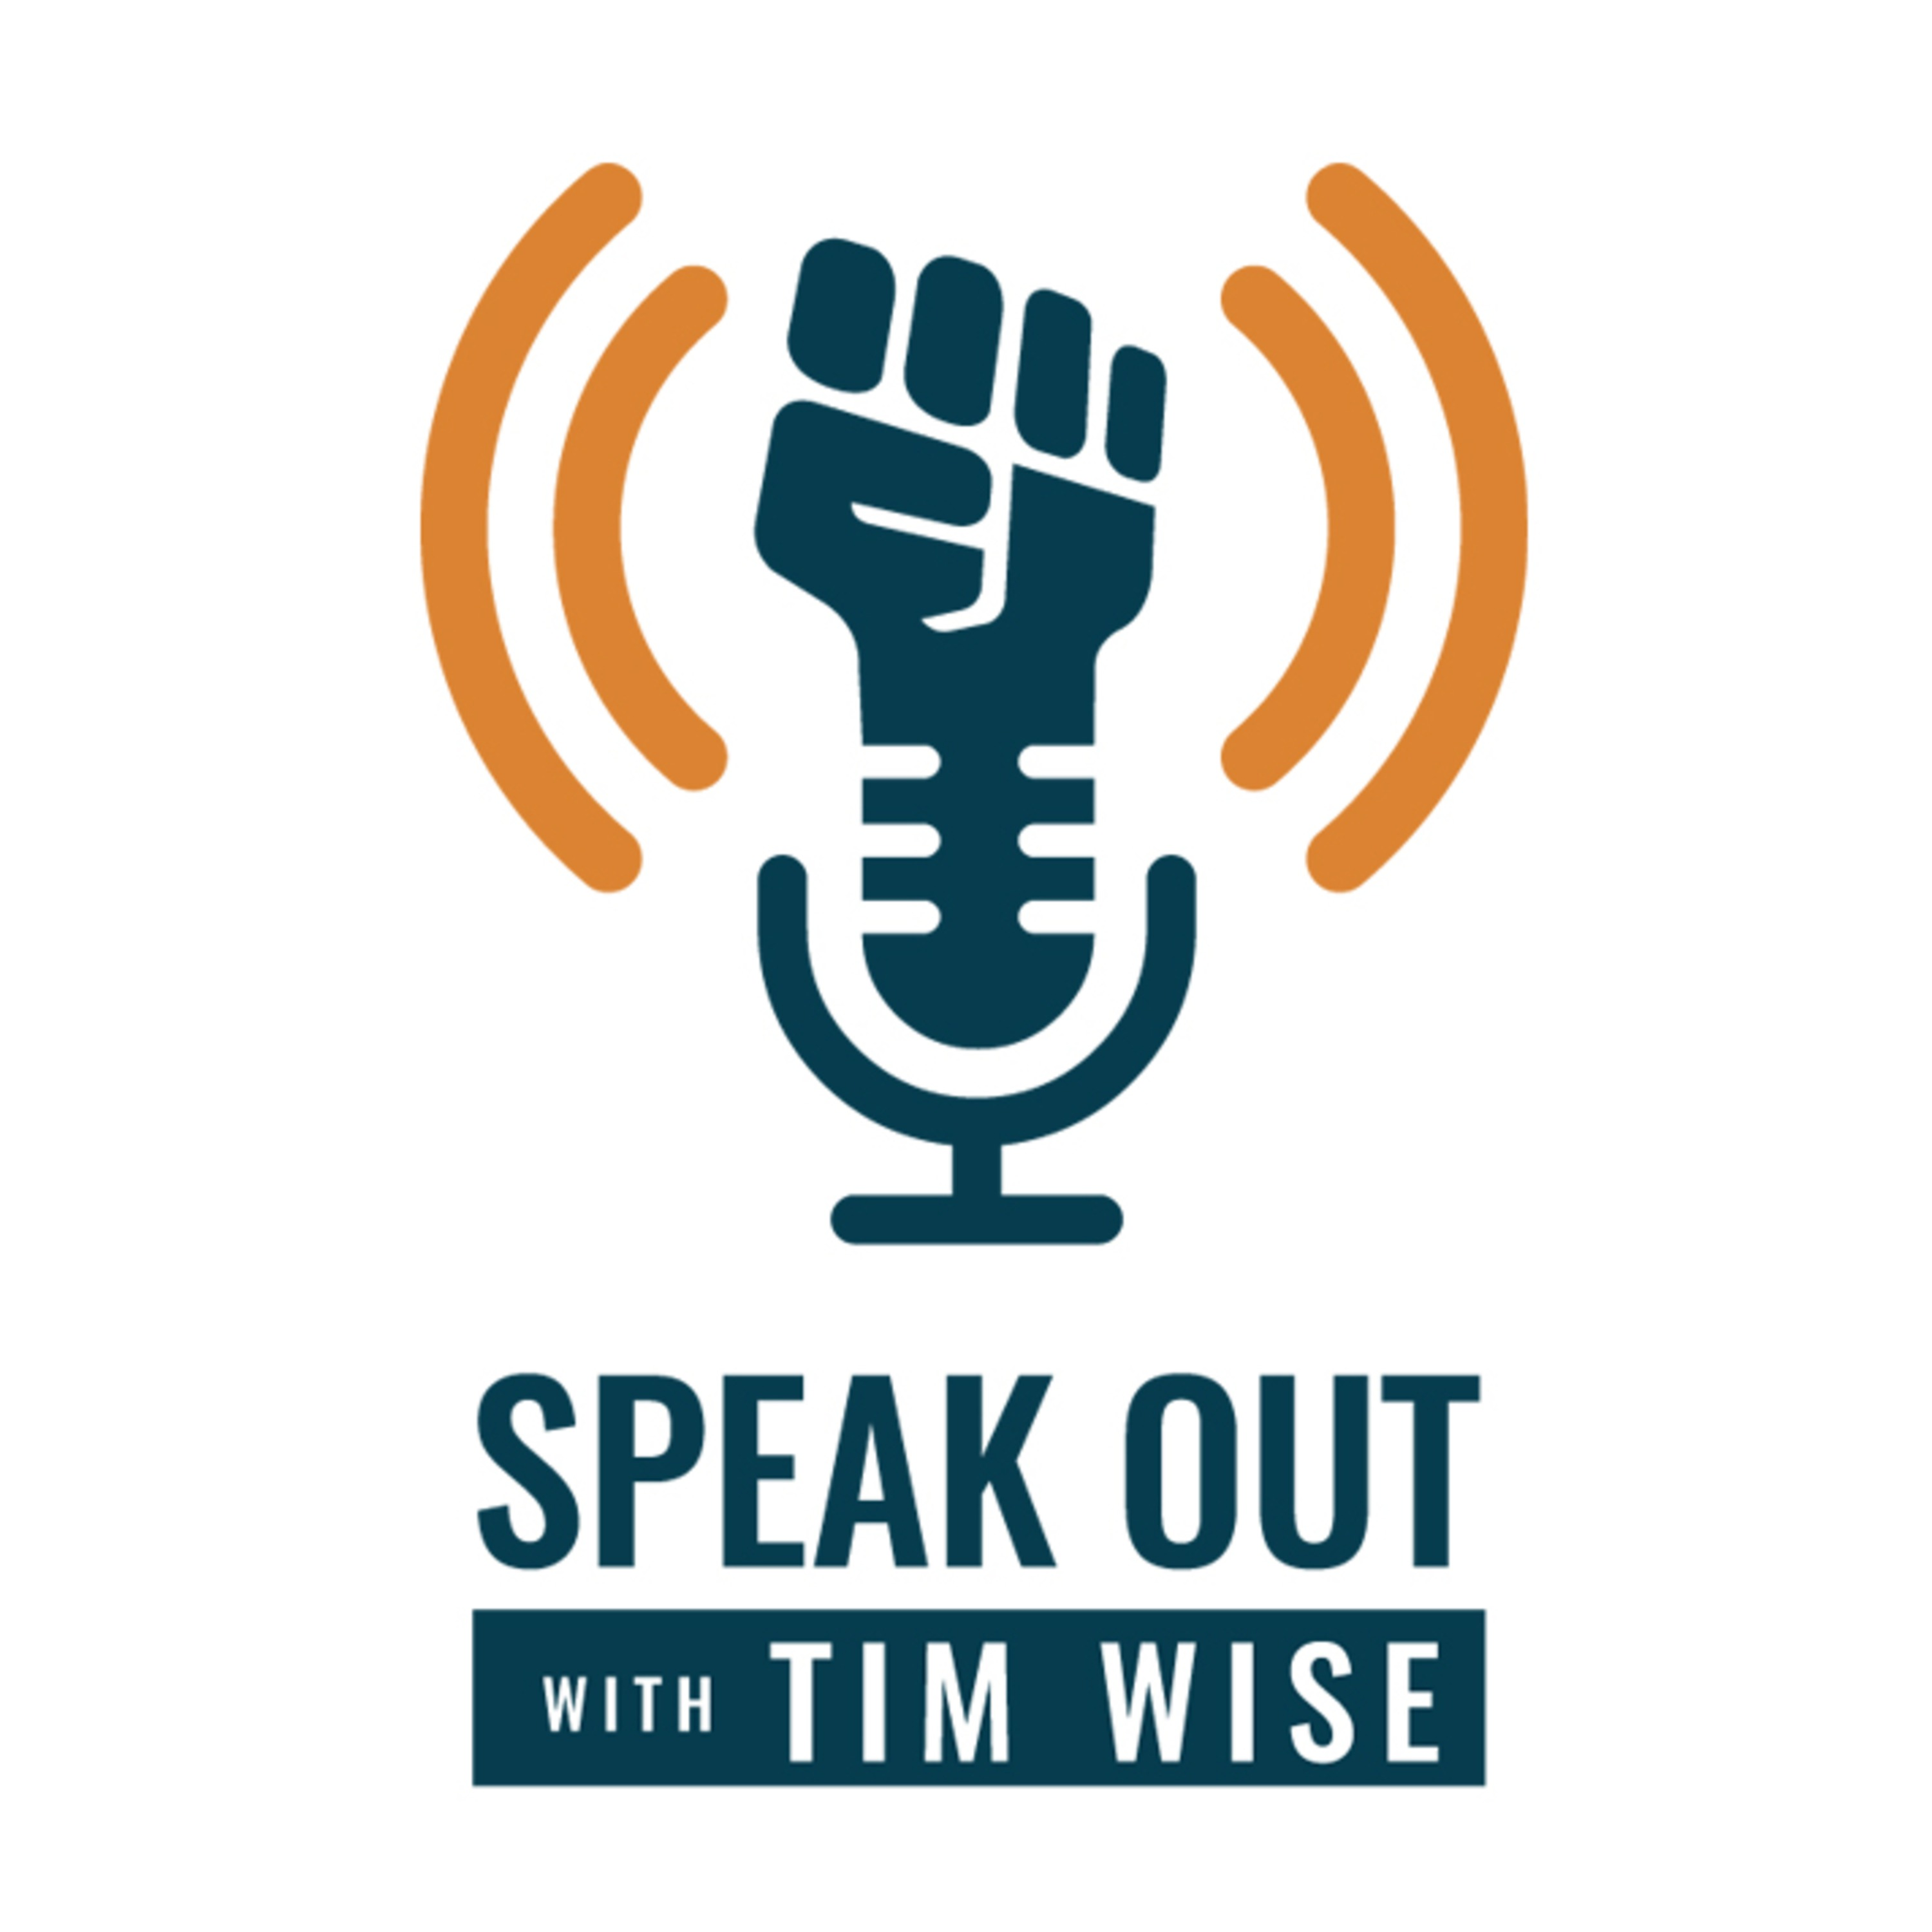 Speak Out with Tim Wise